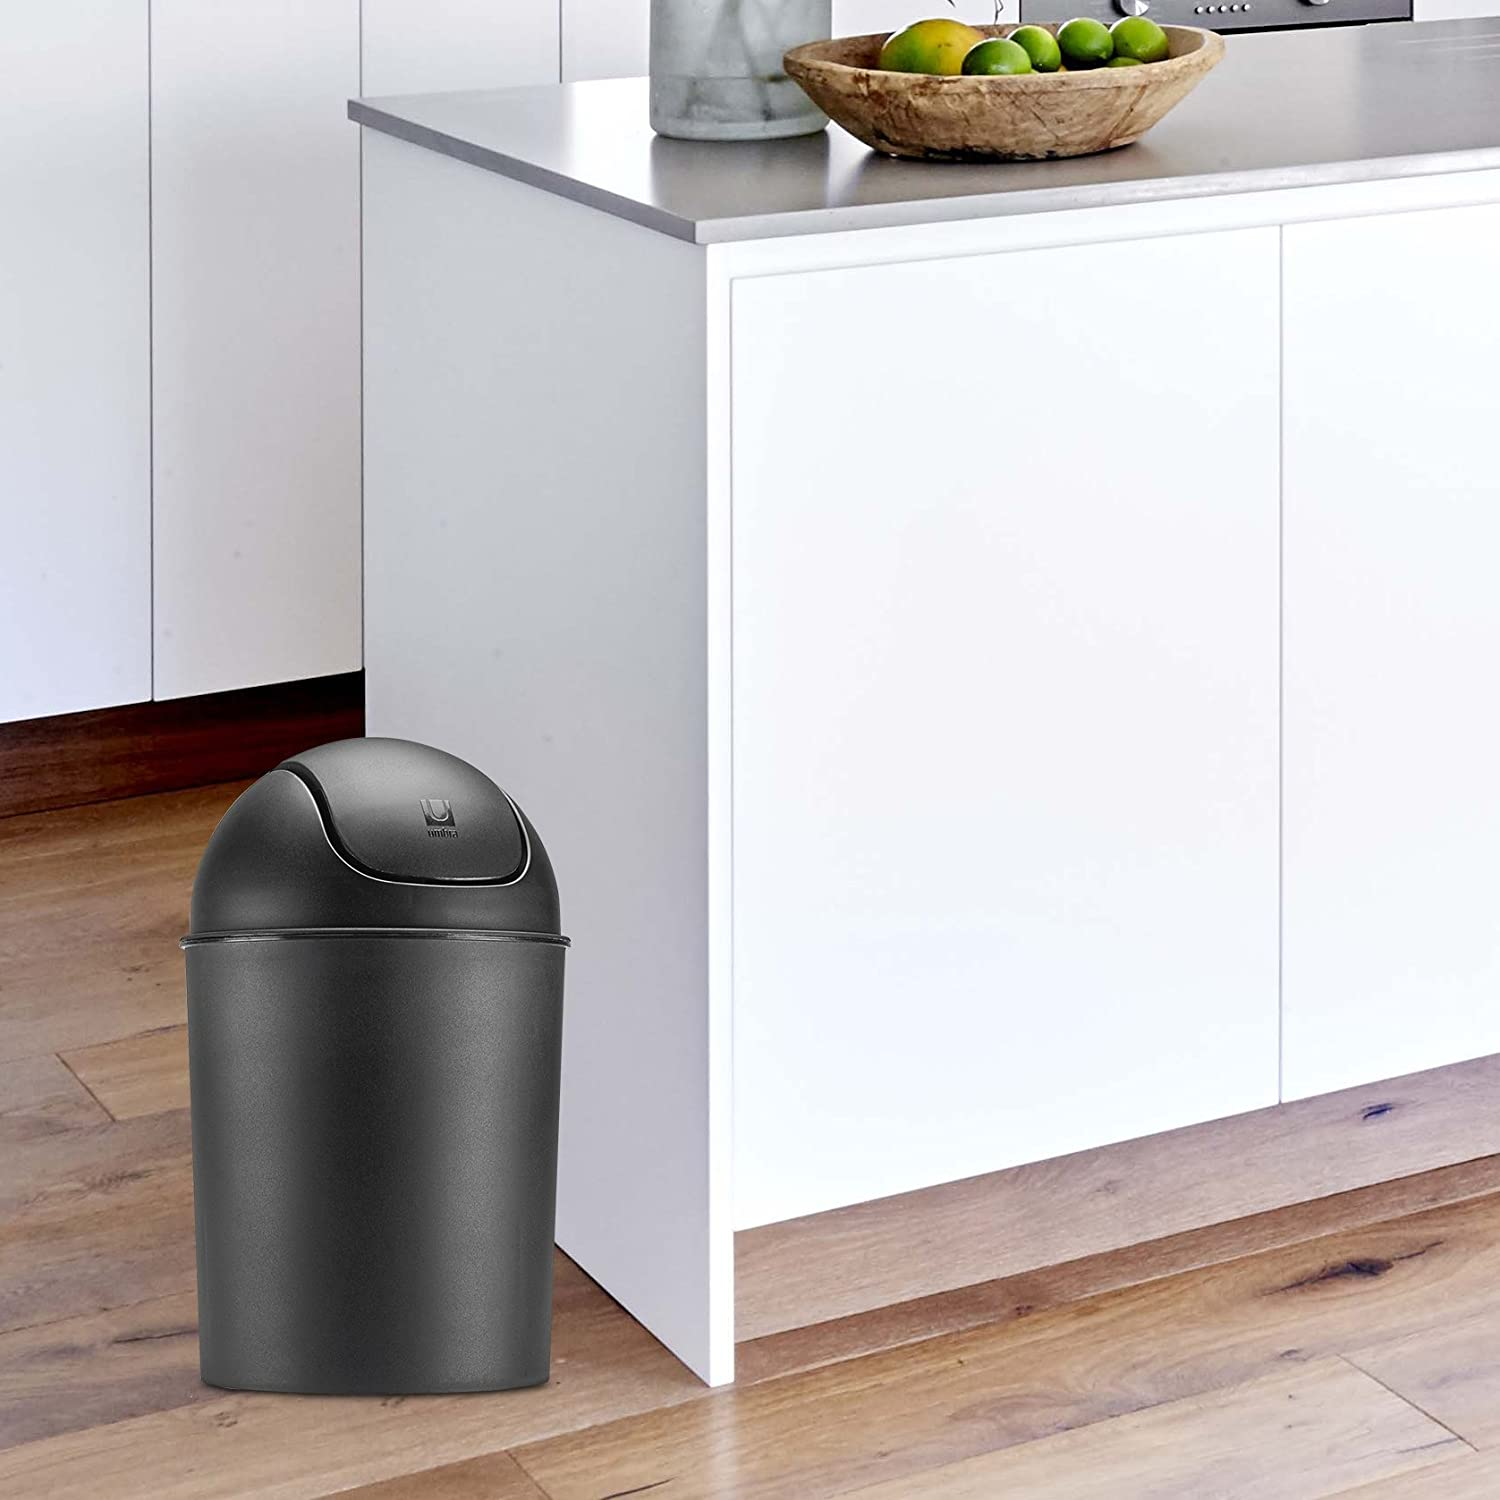 Amazon.com: Umbra Mini Waste Can 1-1/2 Gallon with Swing Lid, Matte ...